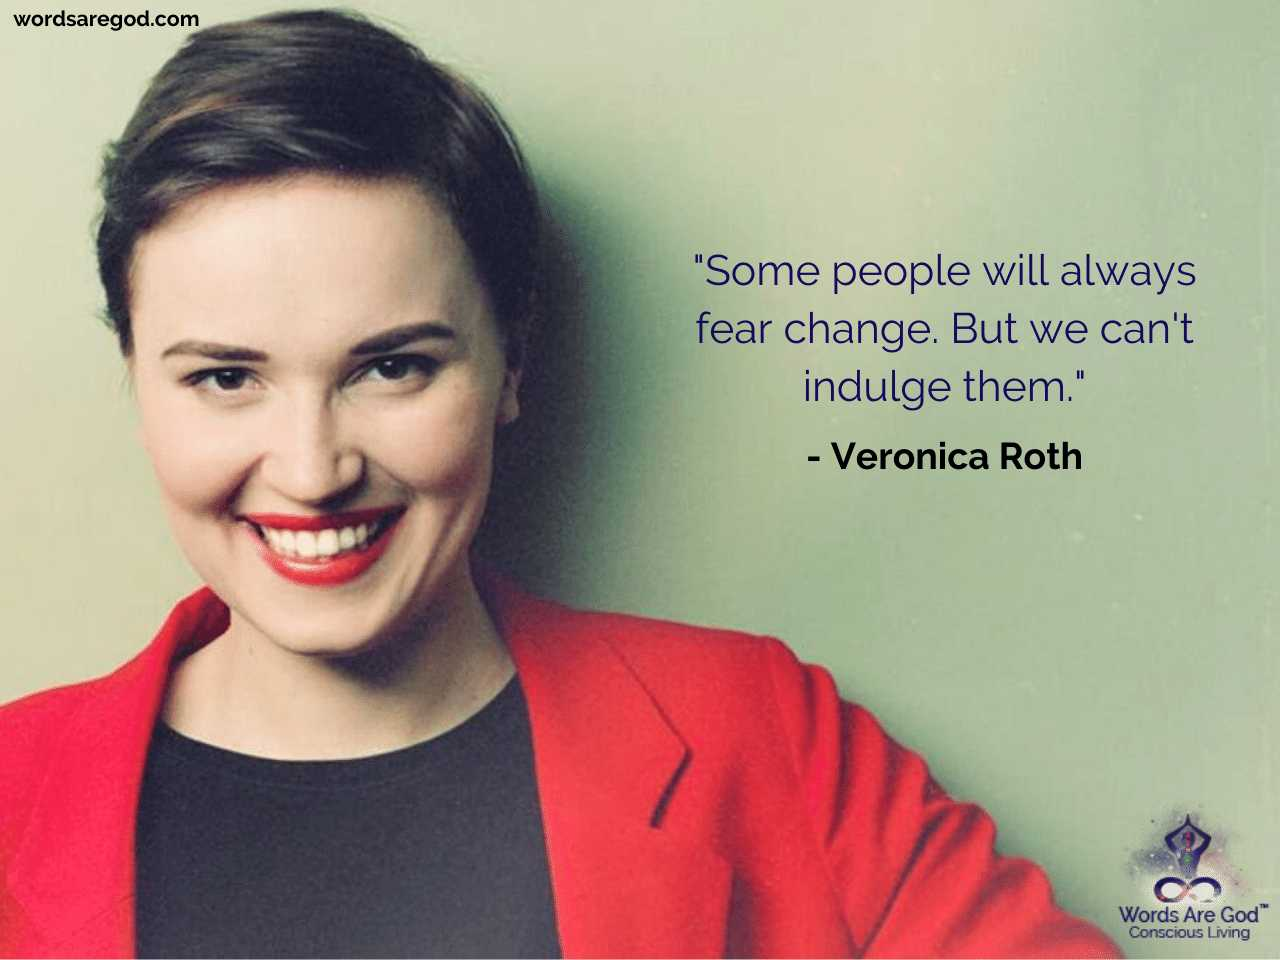 Veronica Roth Life Quote